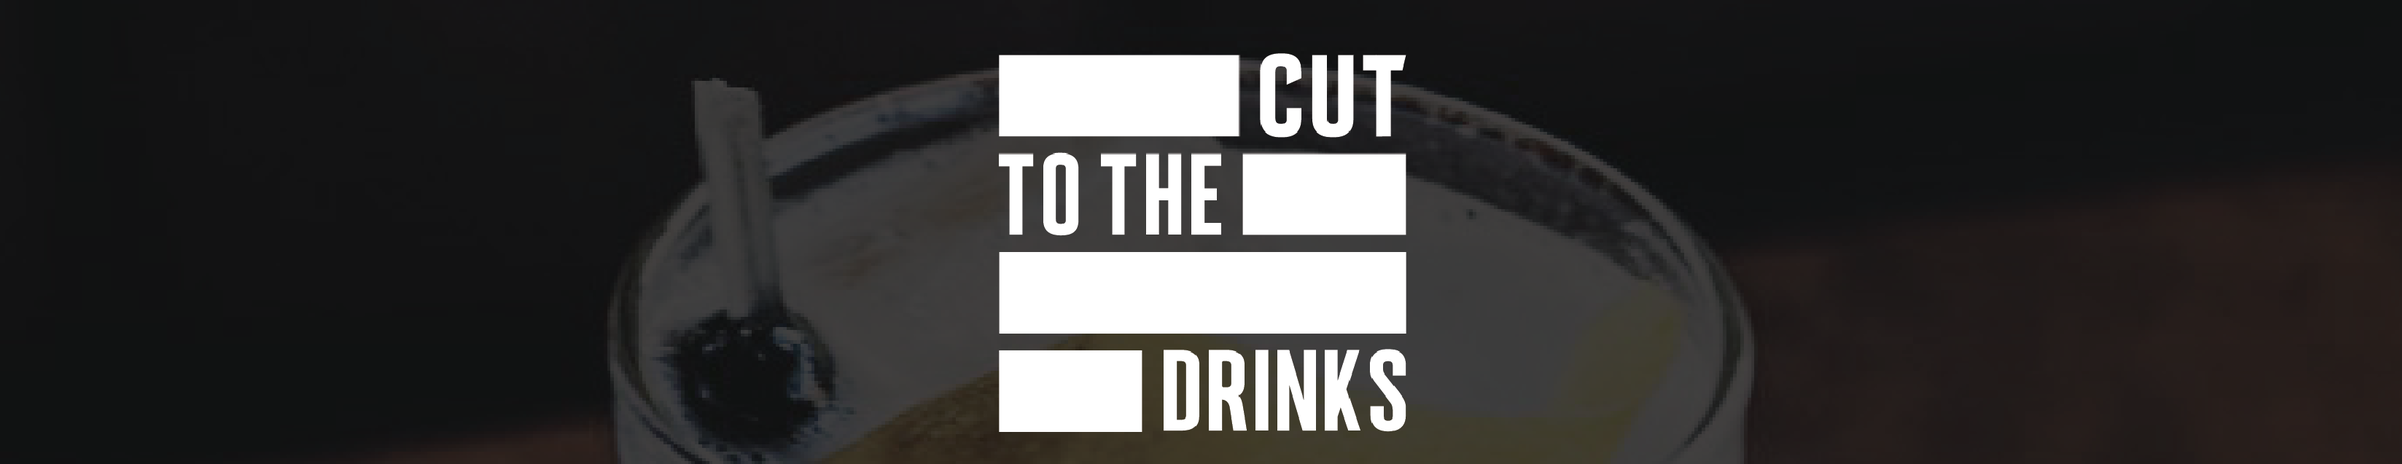 drinks1-01.png